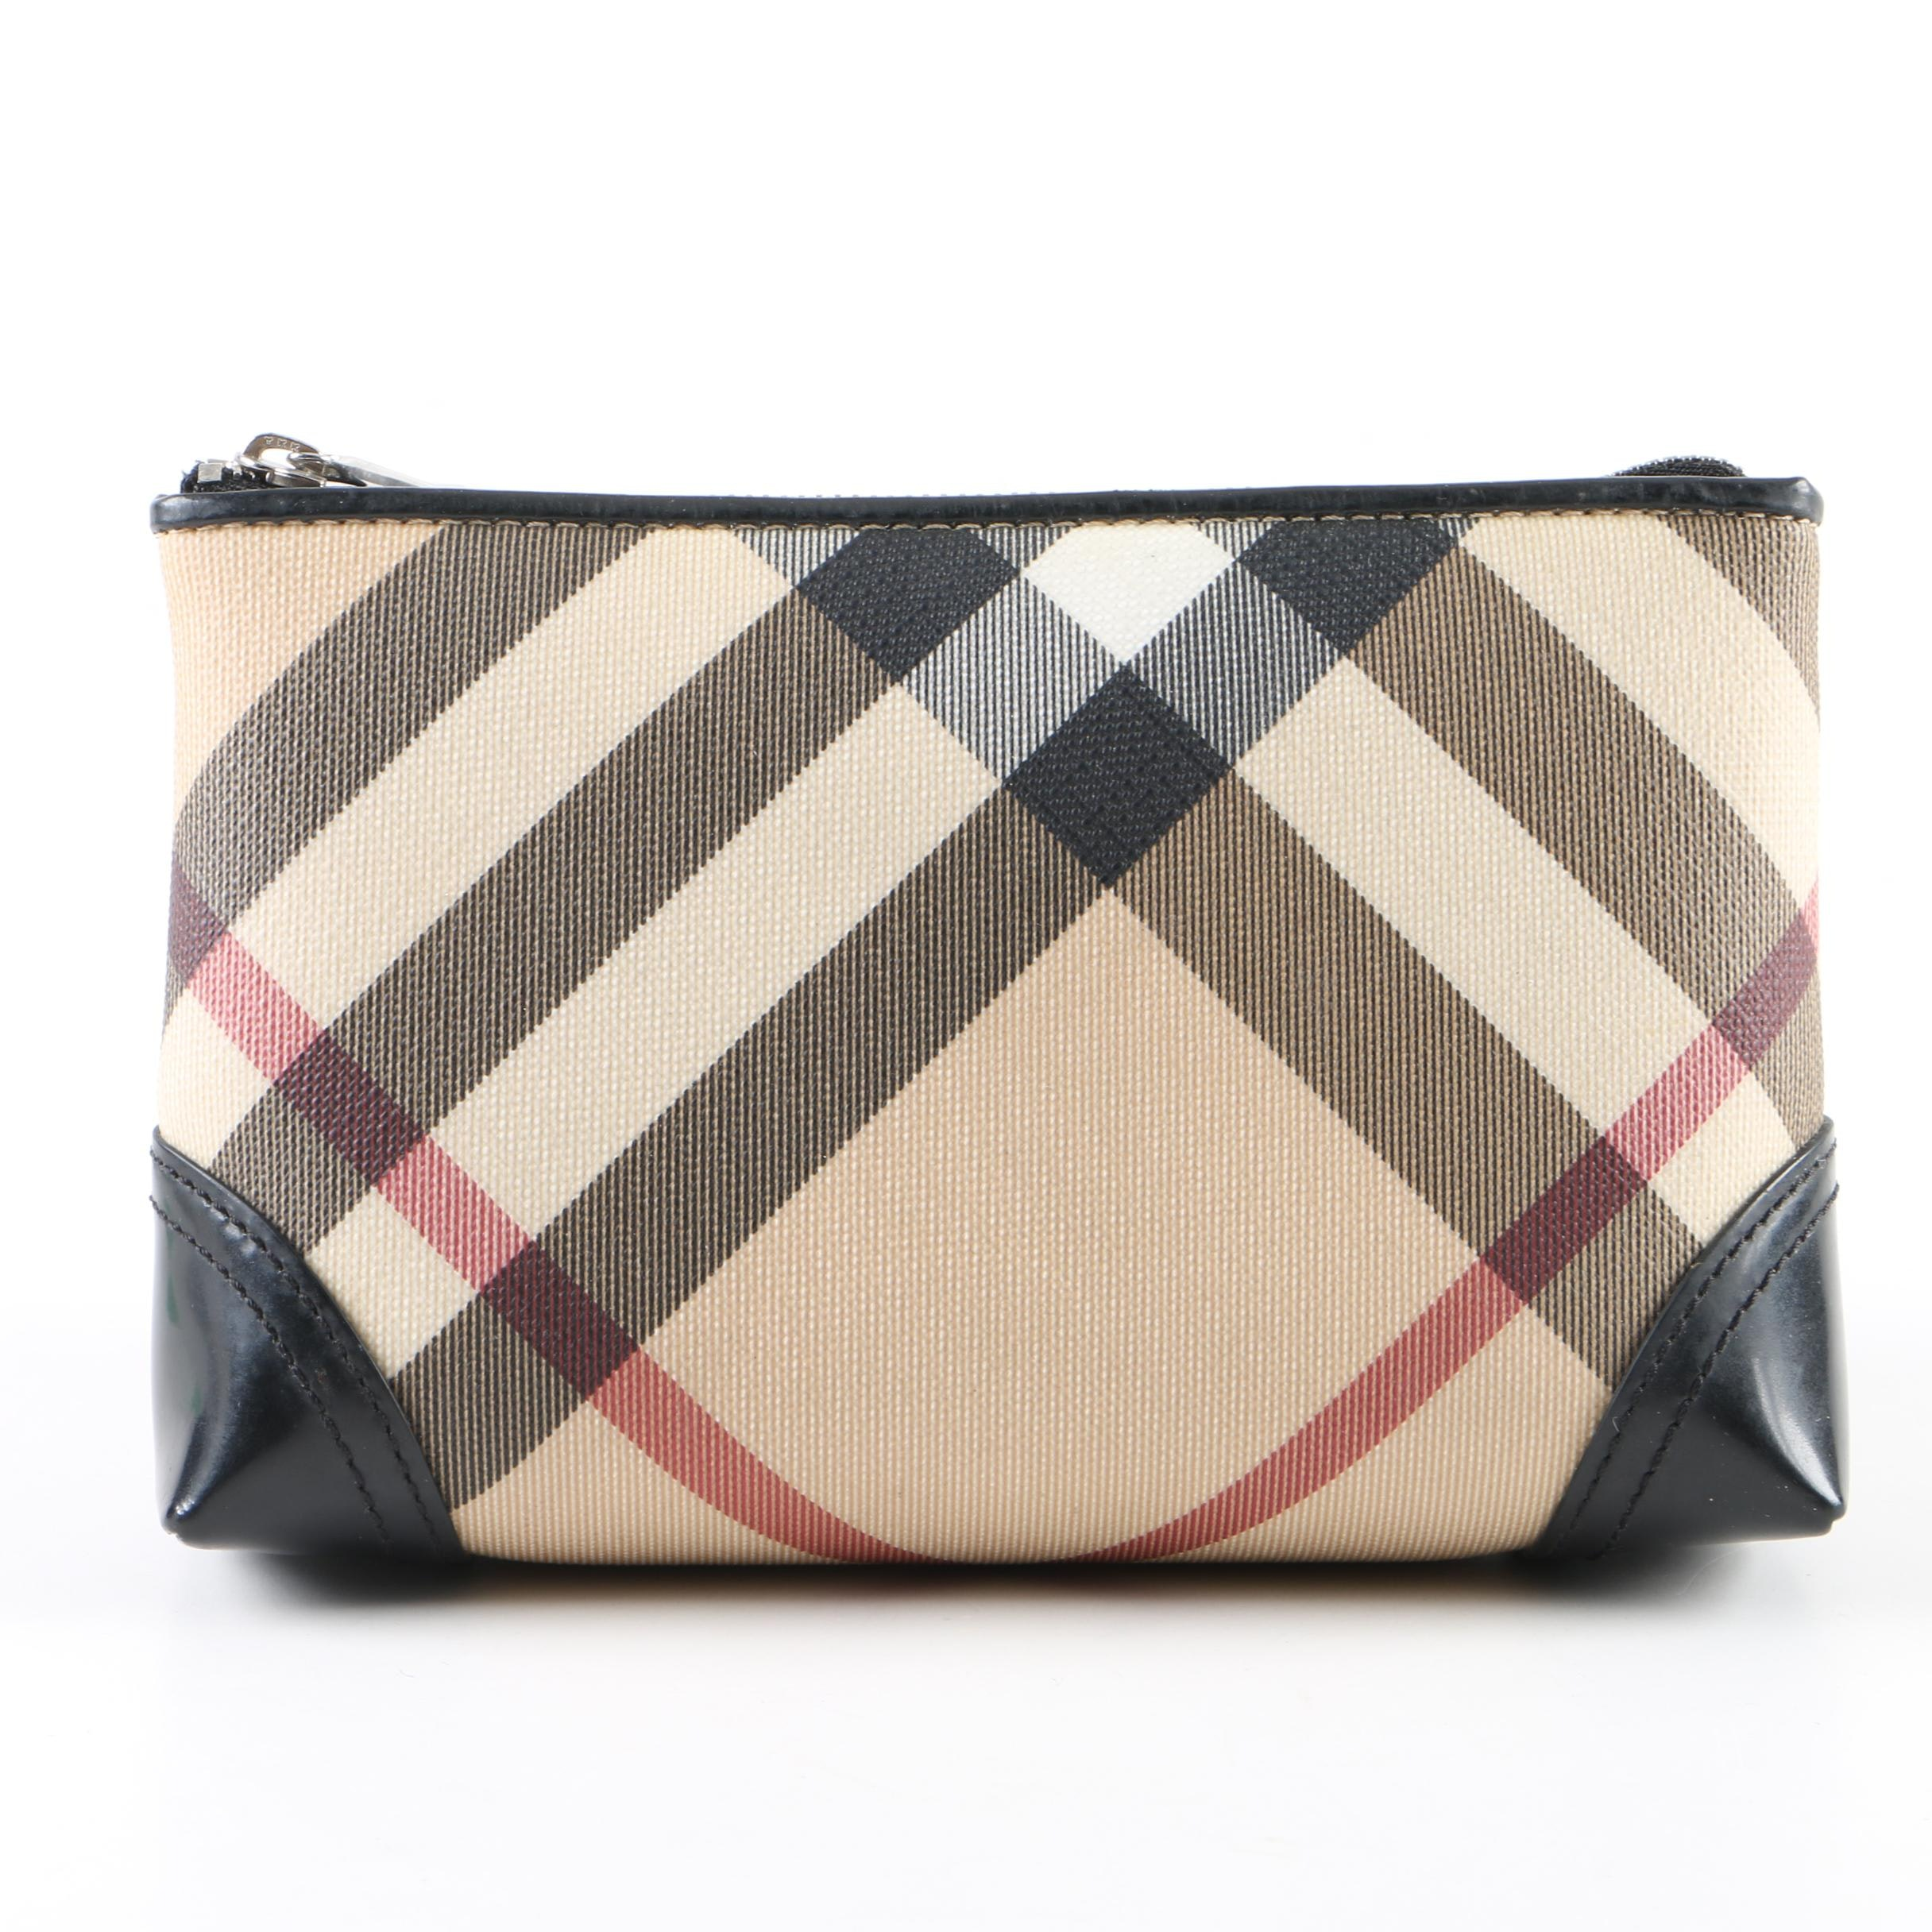 "Burberry ""Nova Check"" Coated Canvas Cosmetic Bag"